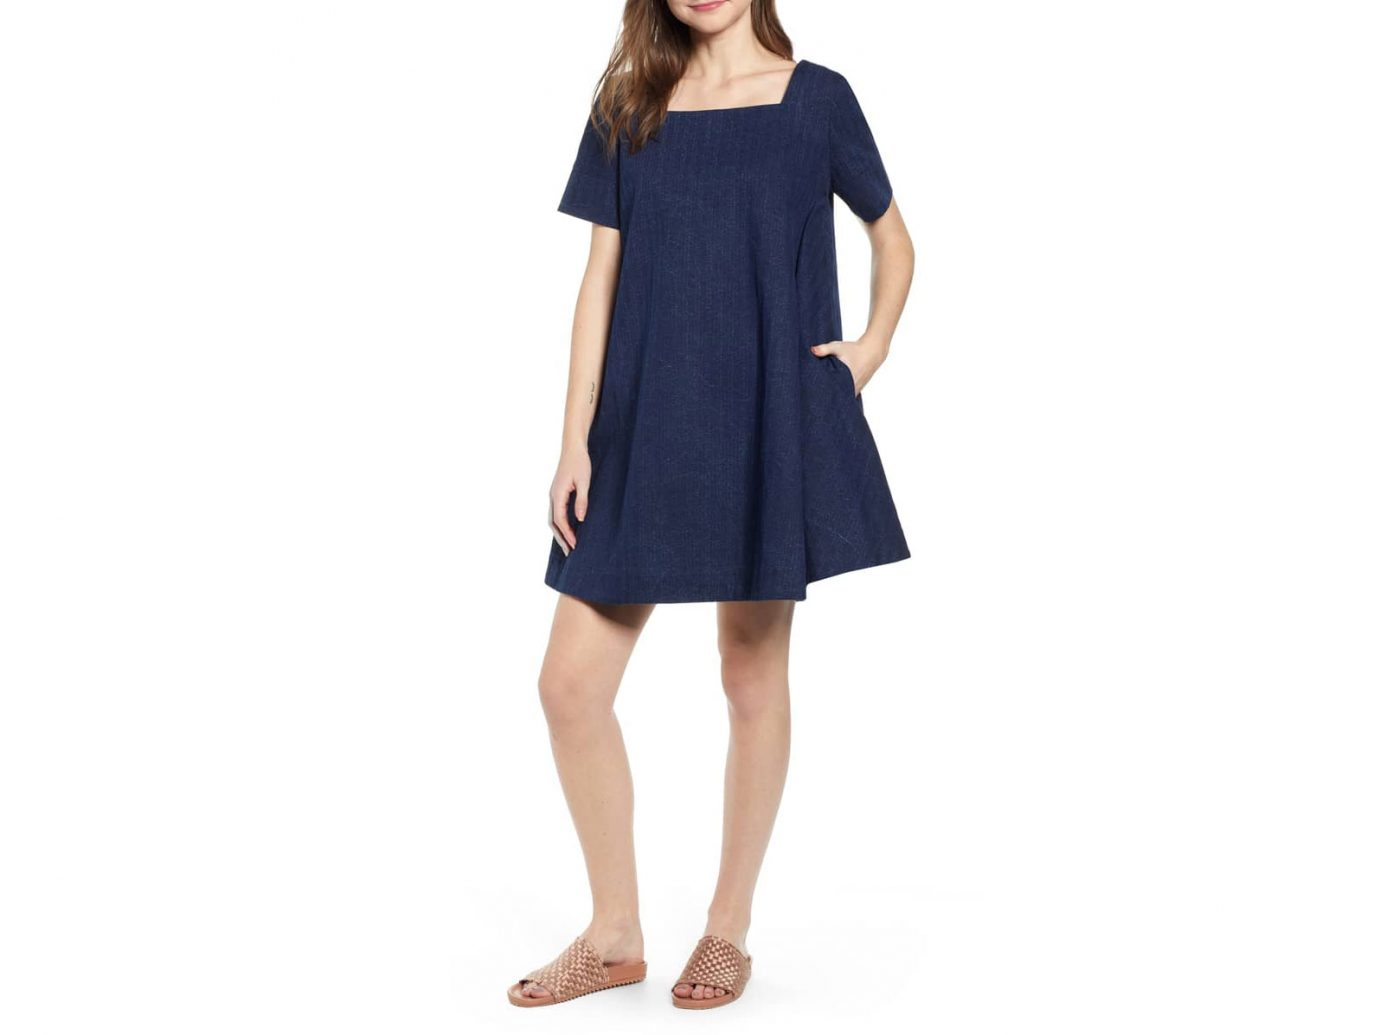 THE ODELLS Damsel x THE ODELLS Bella Square Neck Cotton Swing Dress